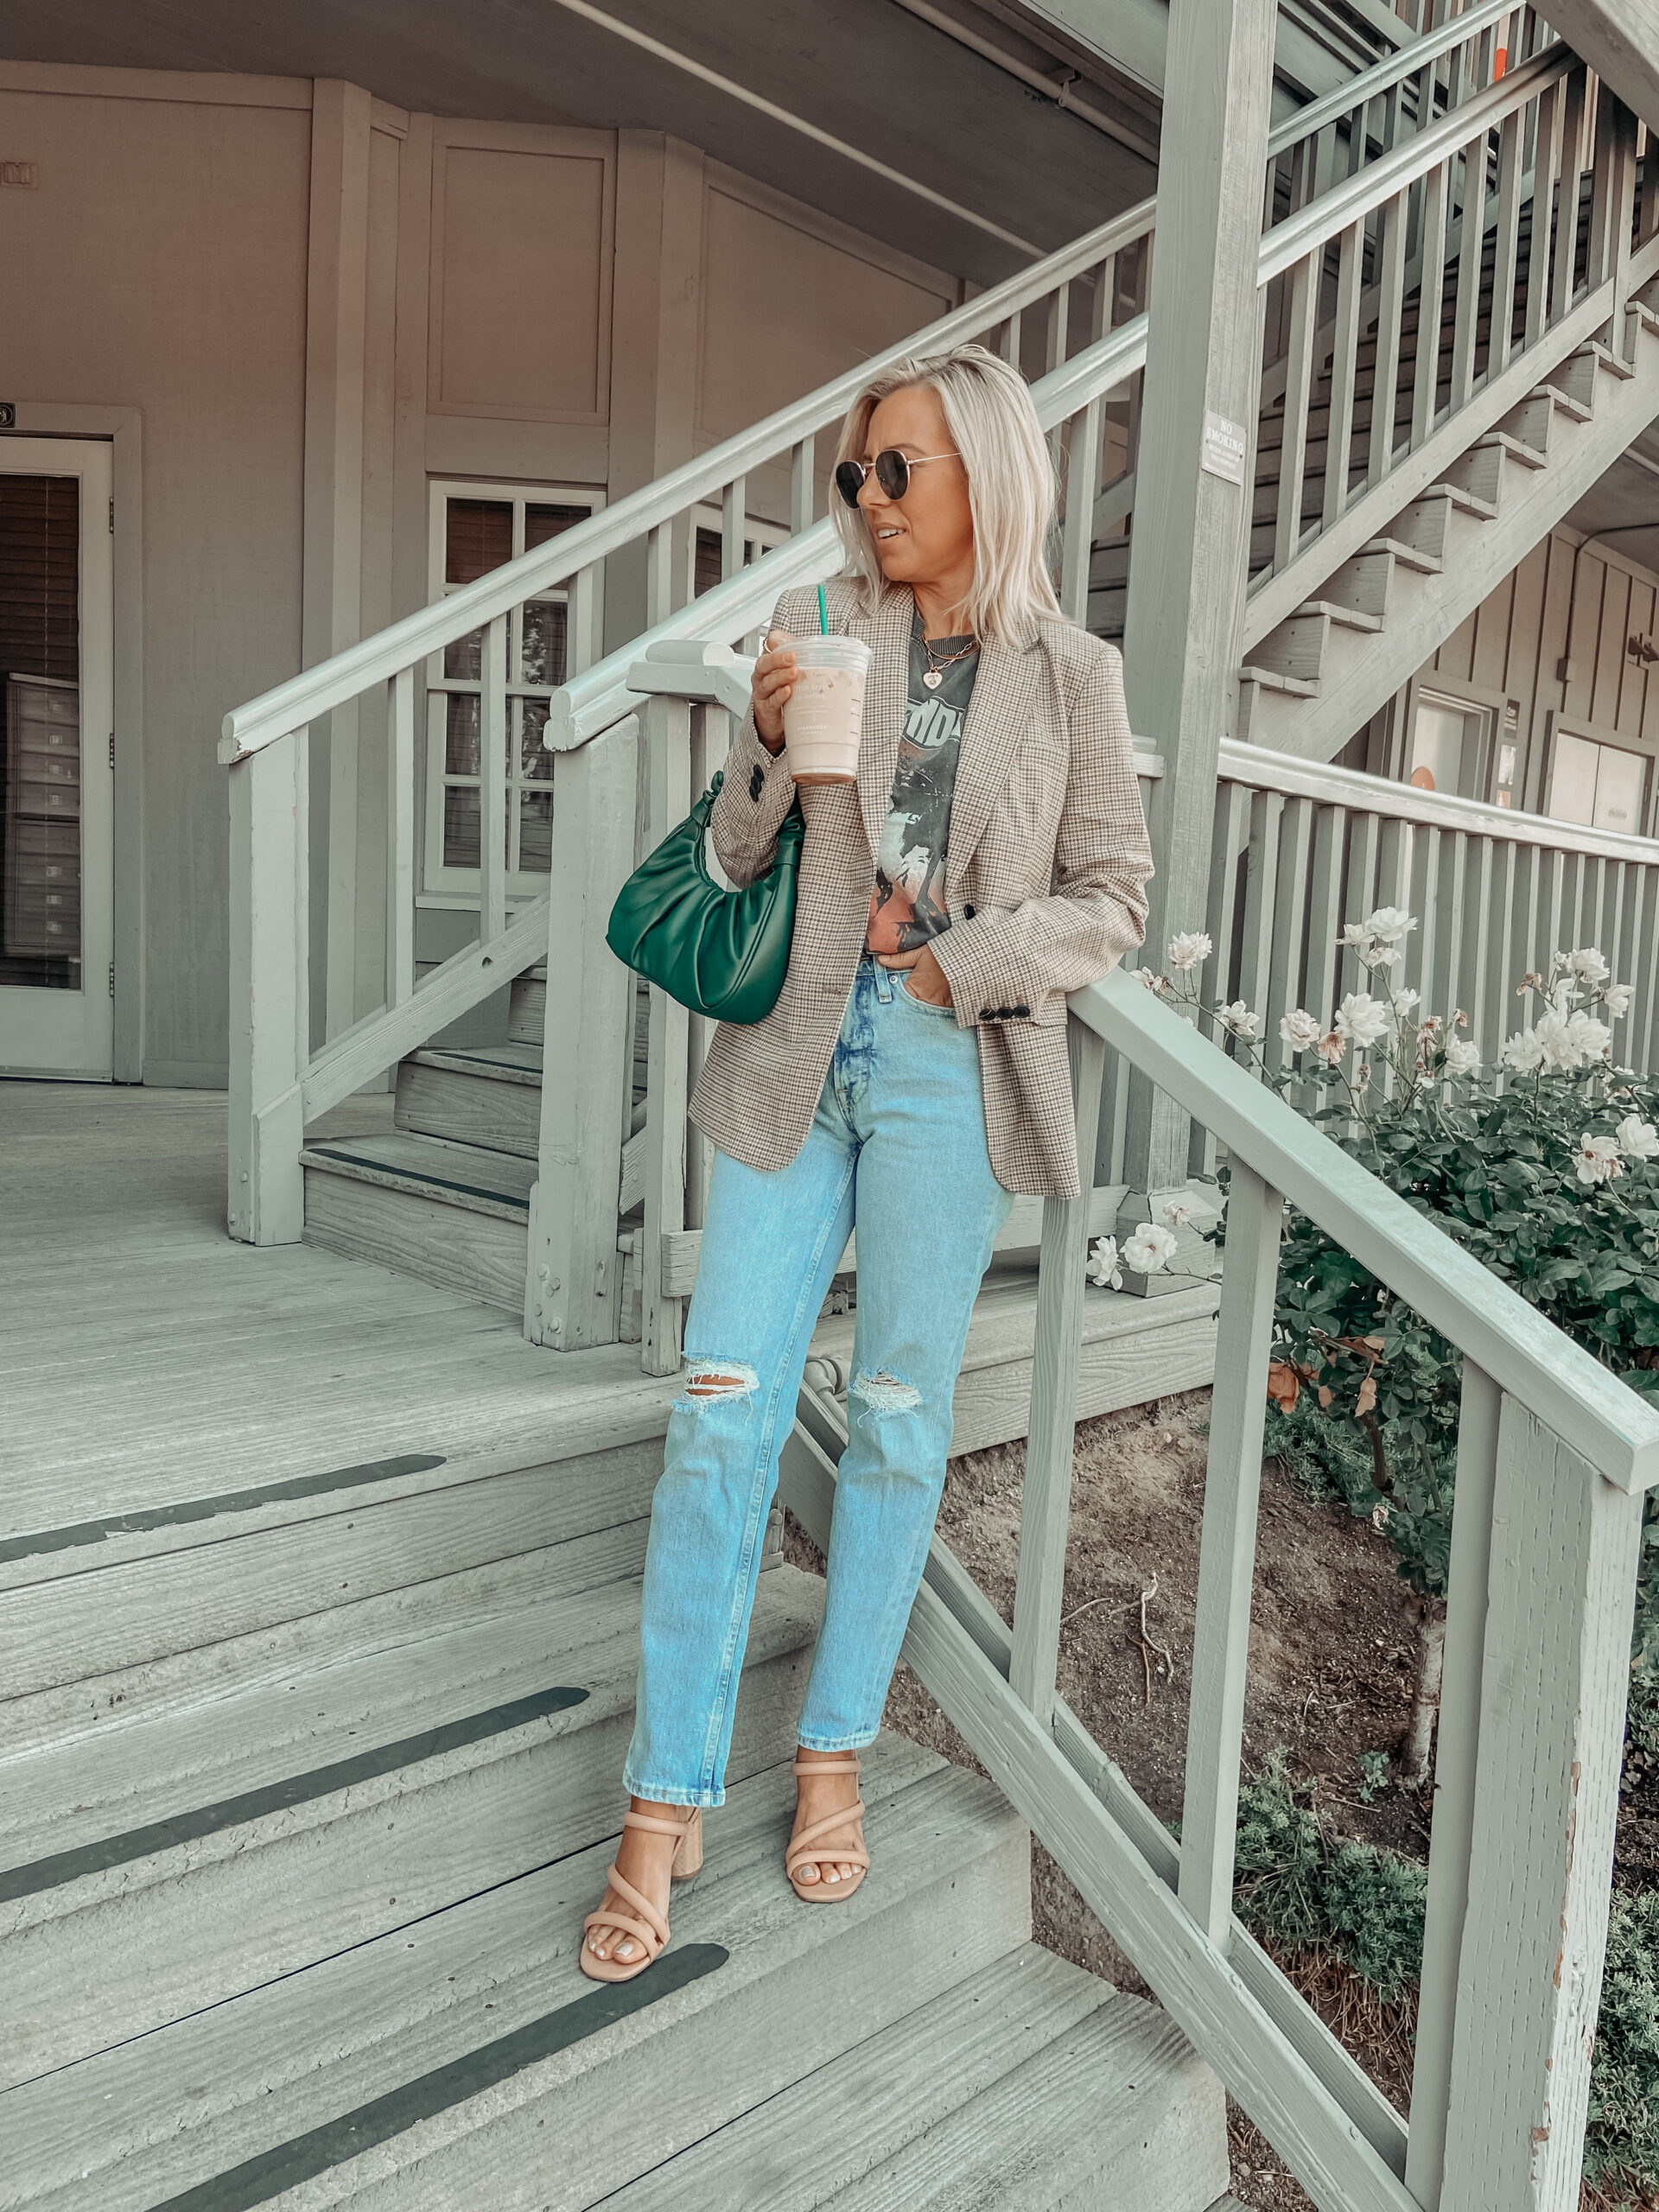 WALMART FALL FASHION- Jaclyn De Leon Style: sharing the latest affordable fall fashion finds from Walmart from cute blazers to moto jackets and shackets.